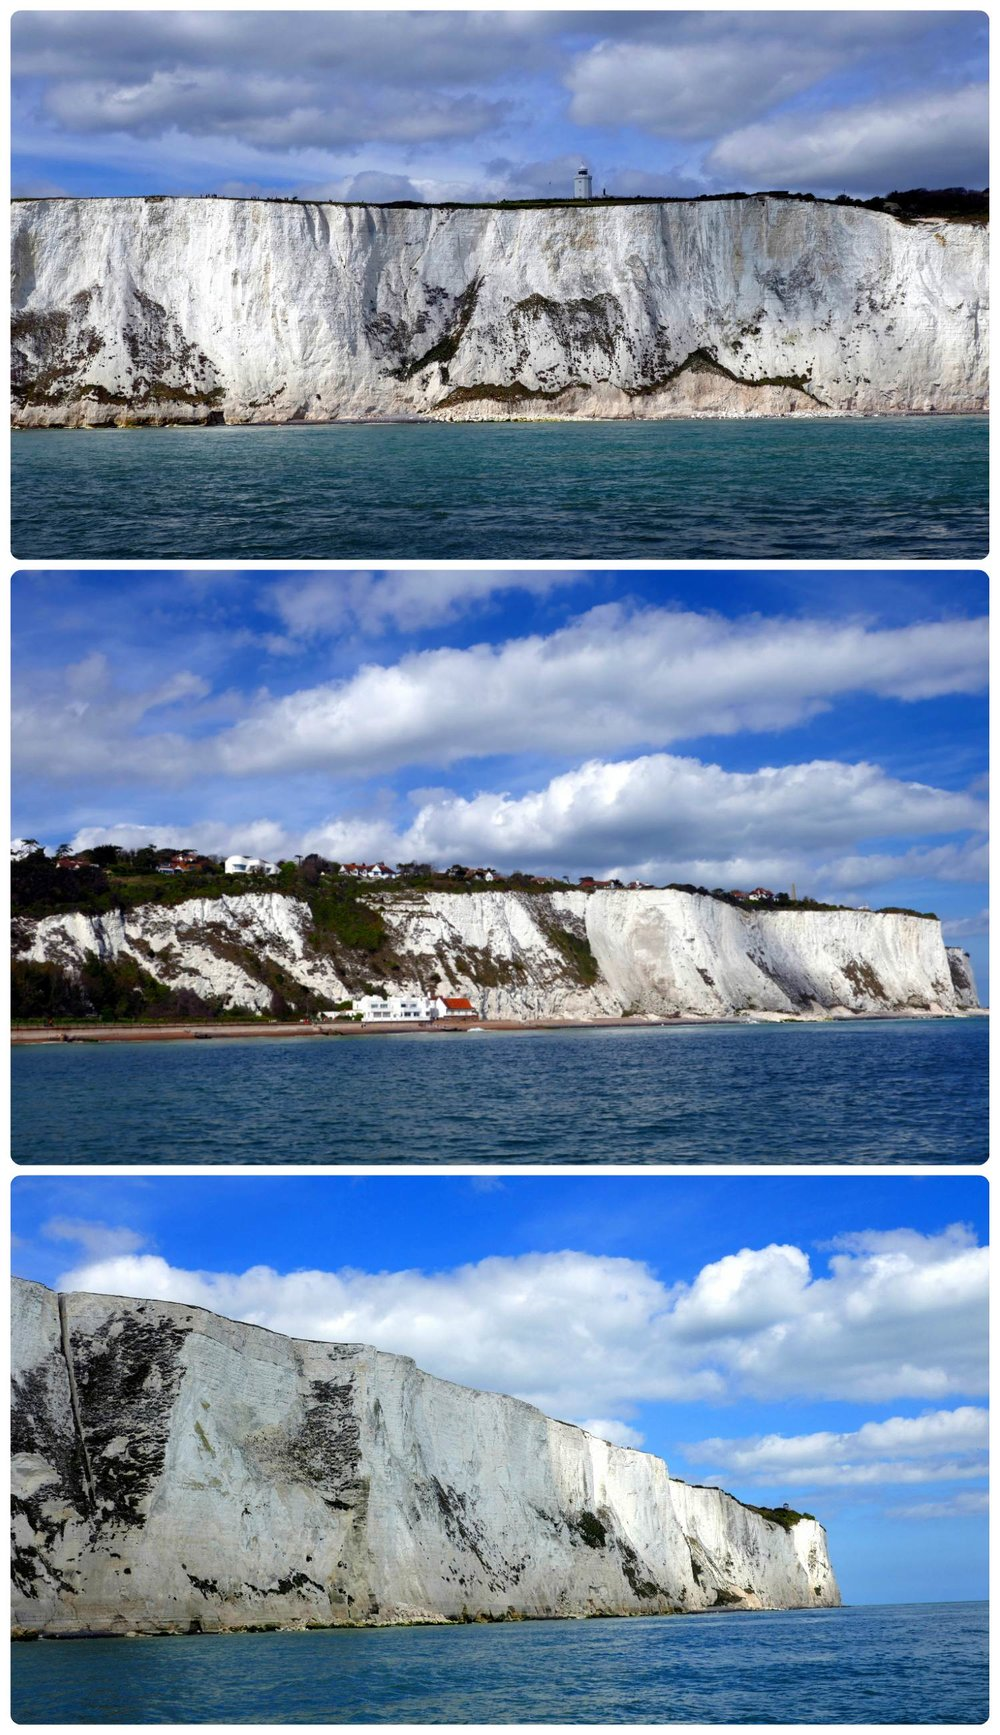 The views of the White Cliffs of Dover were amazing from the speed boat tour we took!